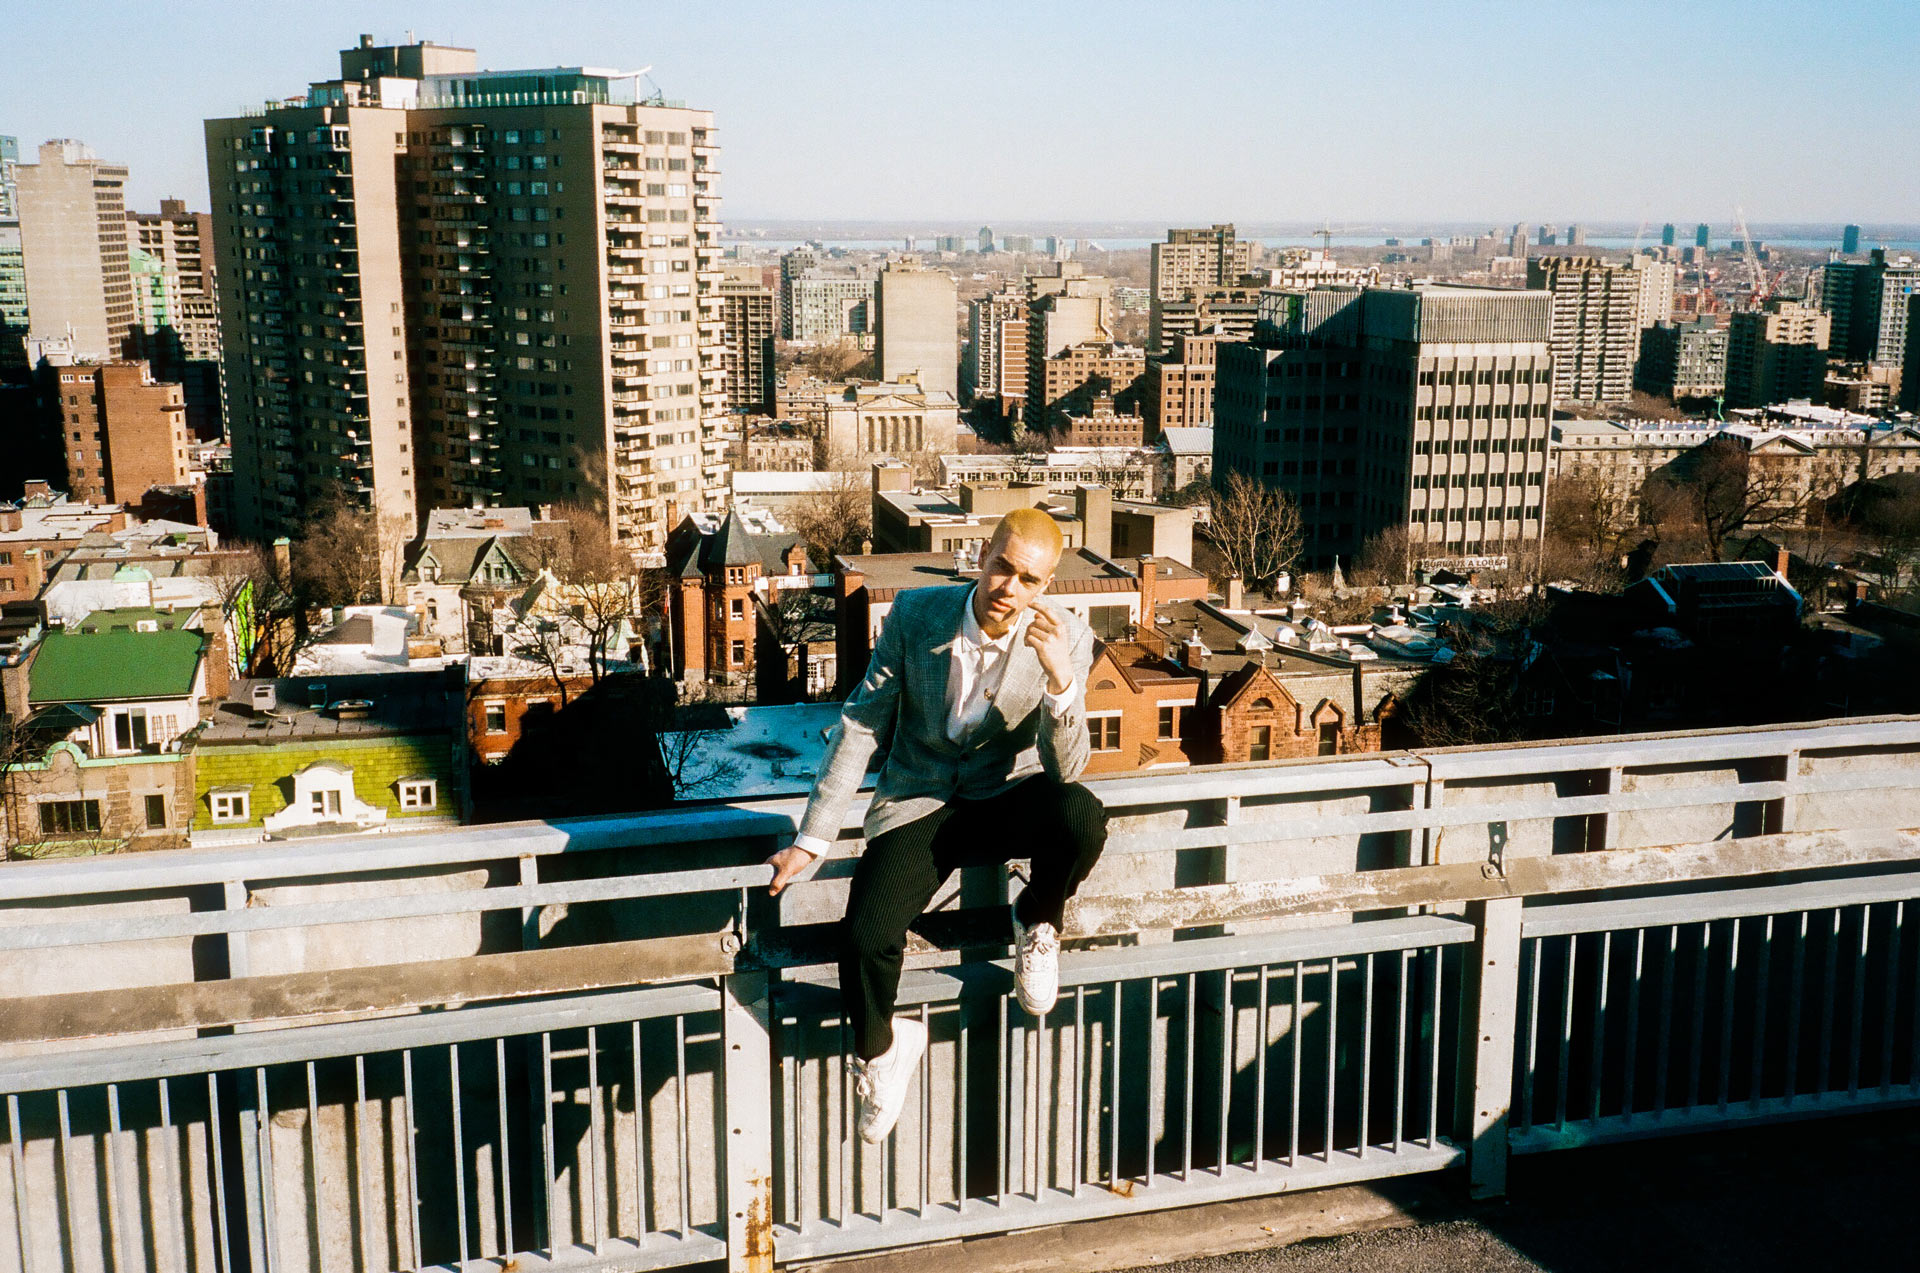 singer Yuki Dreams Again sitting on metal railing looking right at camera with view of the city and buildings in the background in behind the scenes of their promotional video filmed by Les Gamins